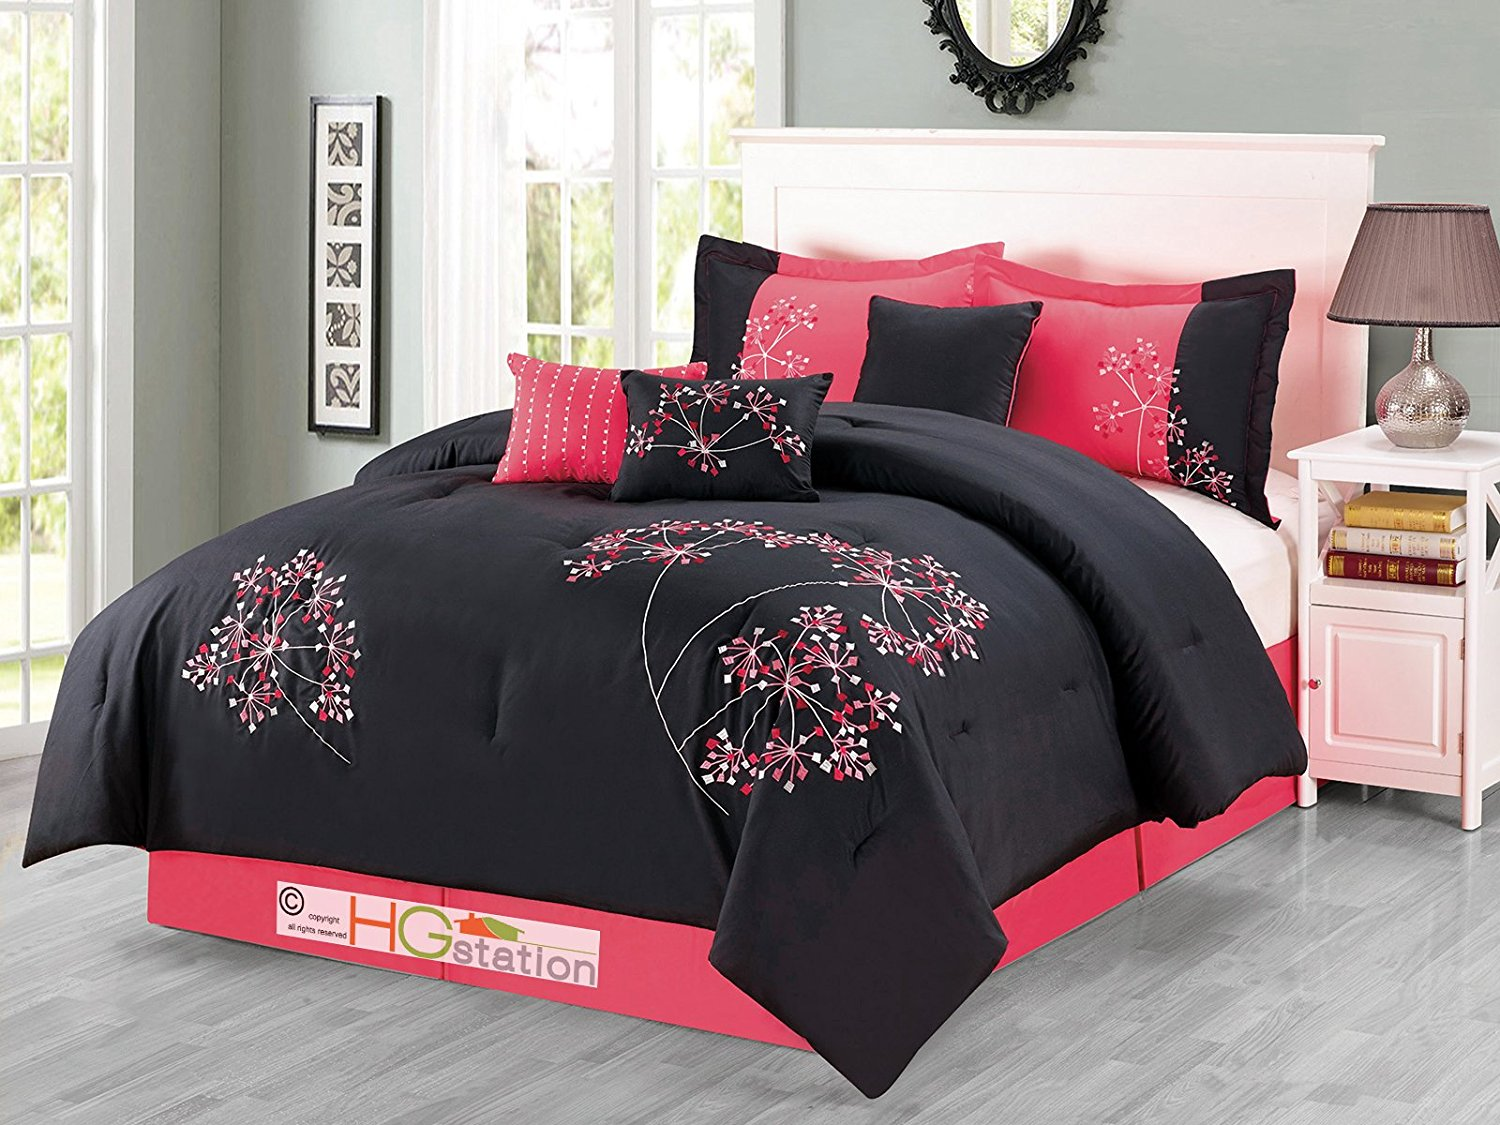 cheerful gray bedding. Get Quotations  7 Pc Cheerful Artsy Dandelion Floral Meadow Embroidery Comforter Set Black Hot Pink Queen Cheap find deals on